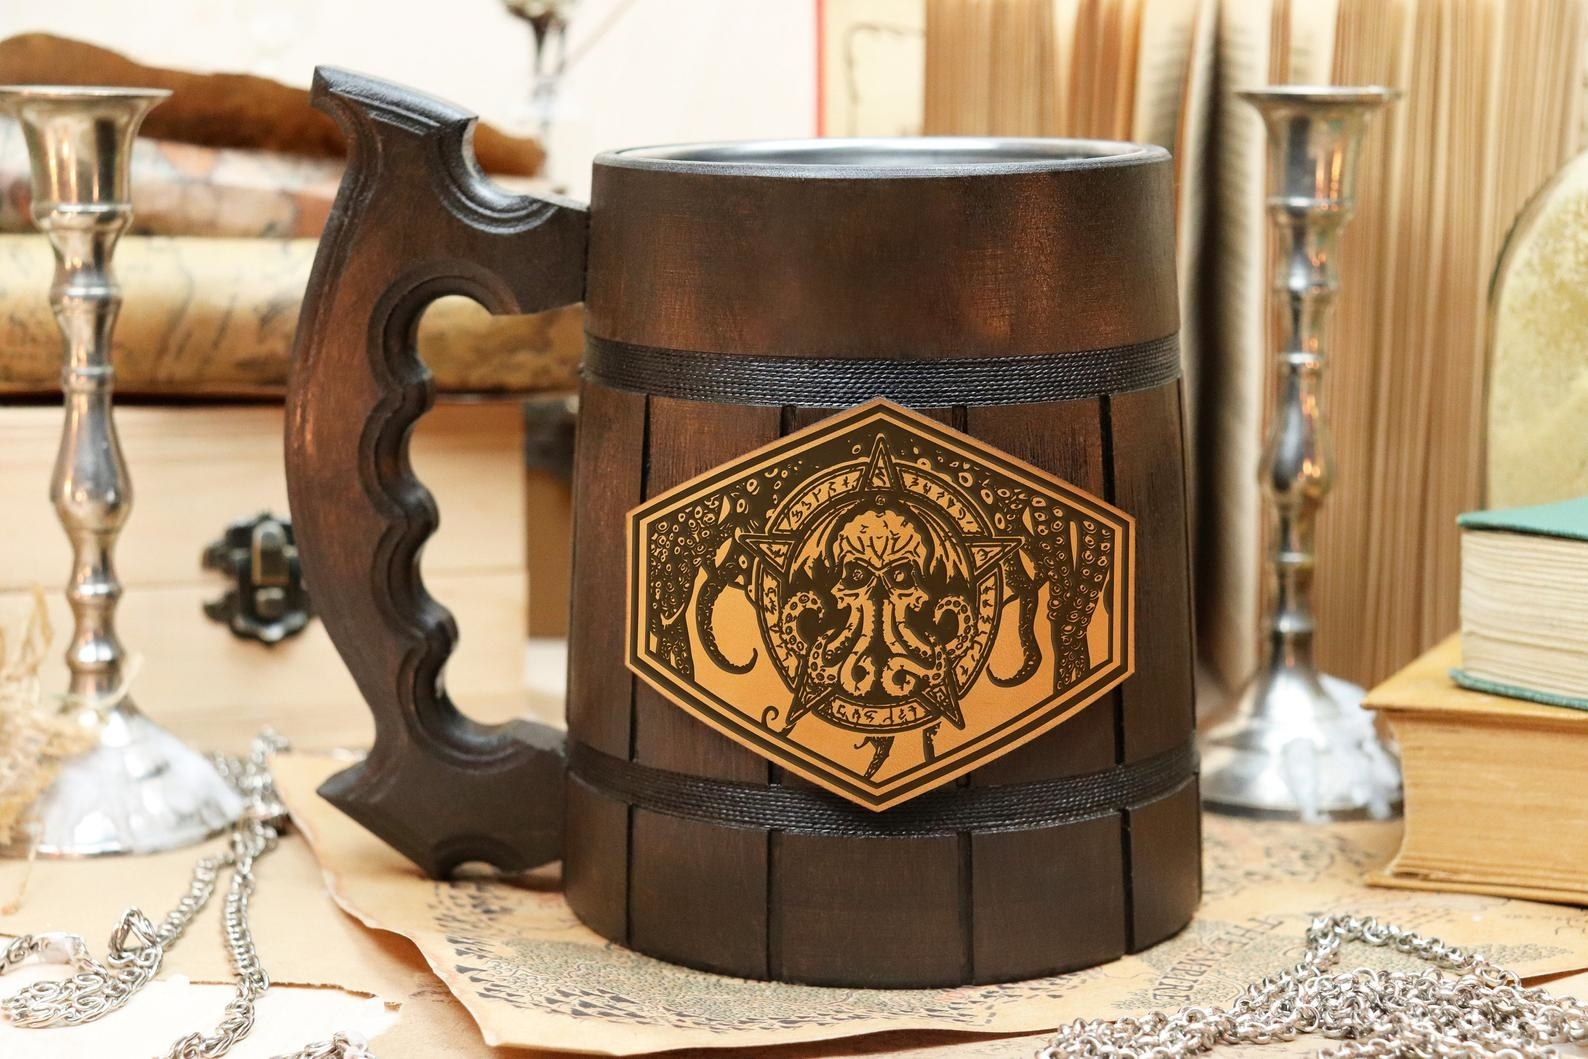 the handmade wooden mug in the dark wood color